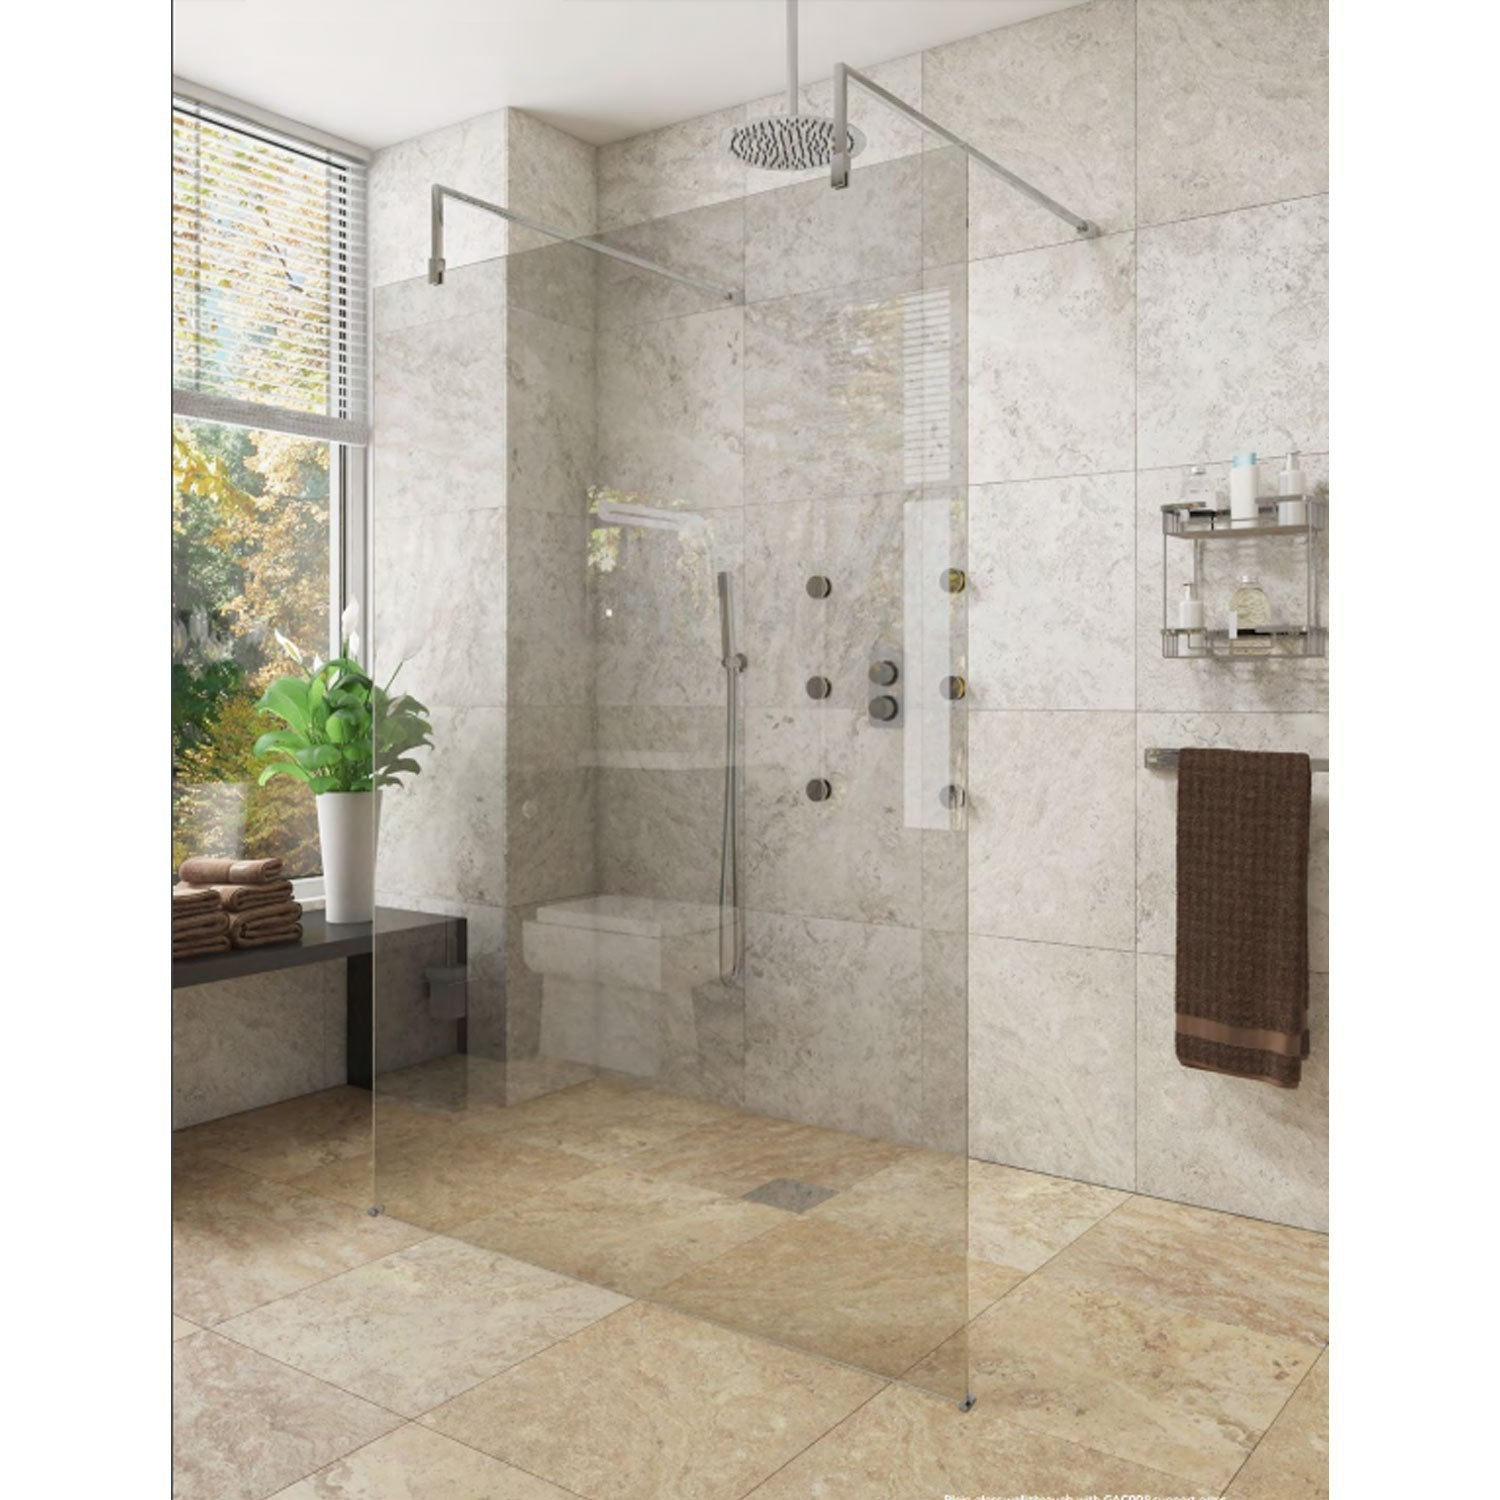 Cassellie Lana Wet Room Screen 2000mm High x 1000mm Wide - 10mm Glass Only